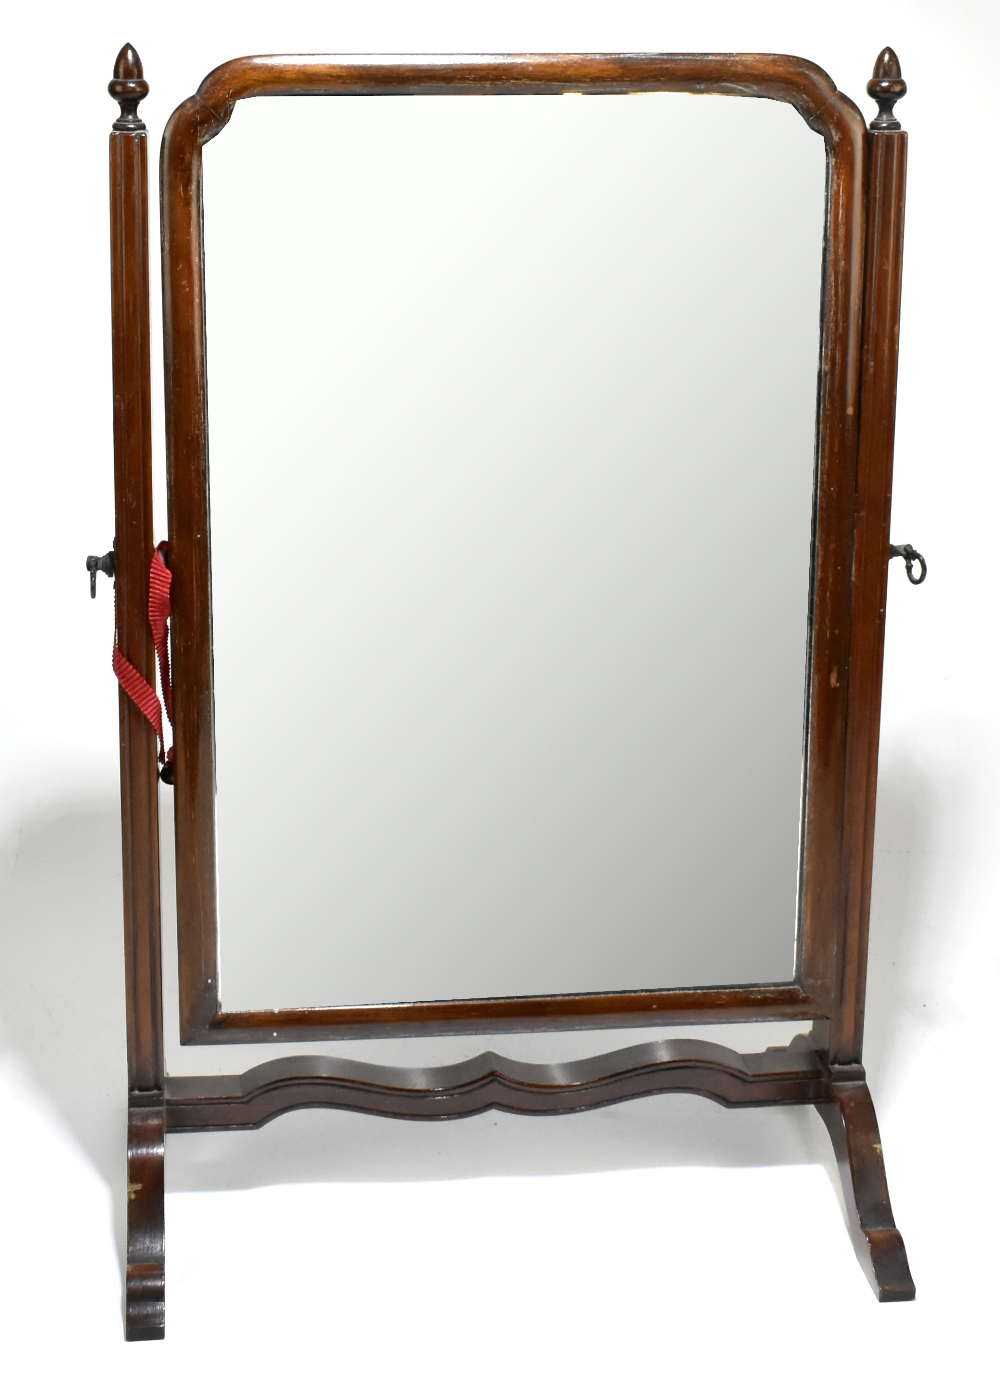 An early 20th century mahogany swing toilet mirror, height 59cm, width 38cm.